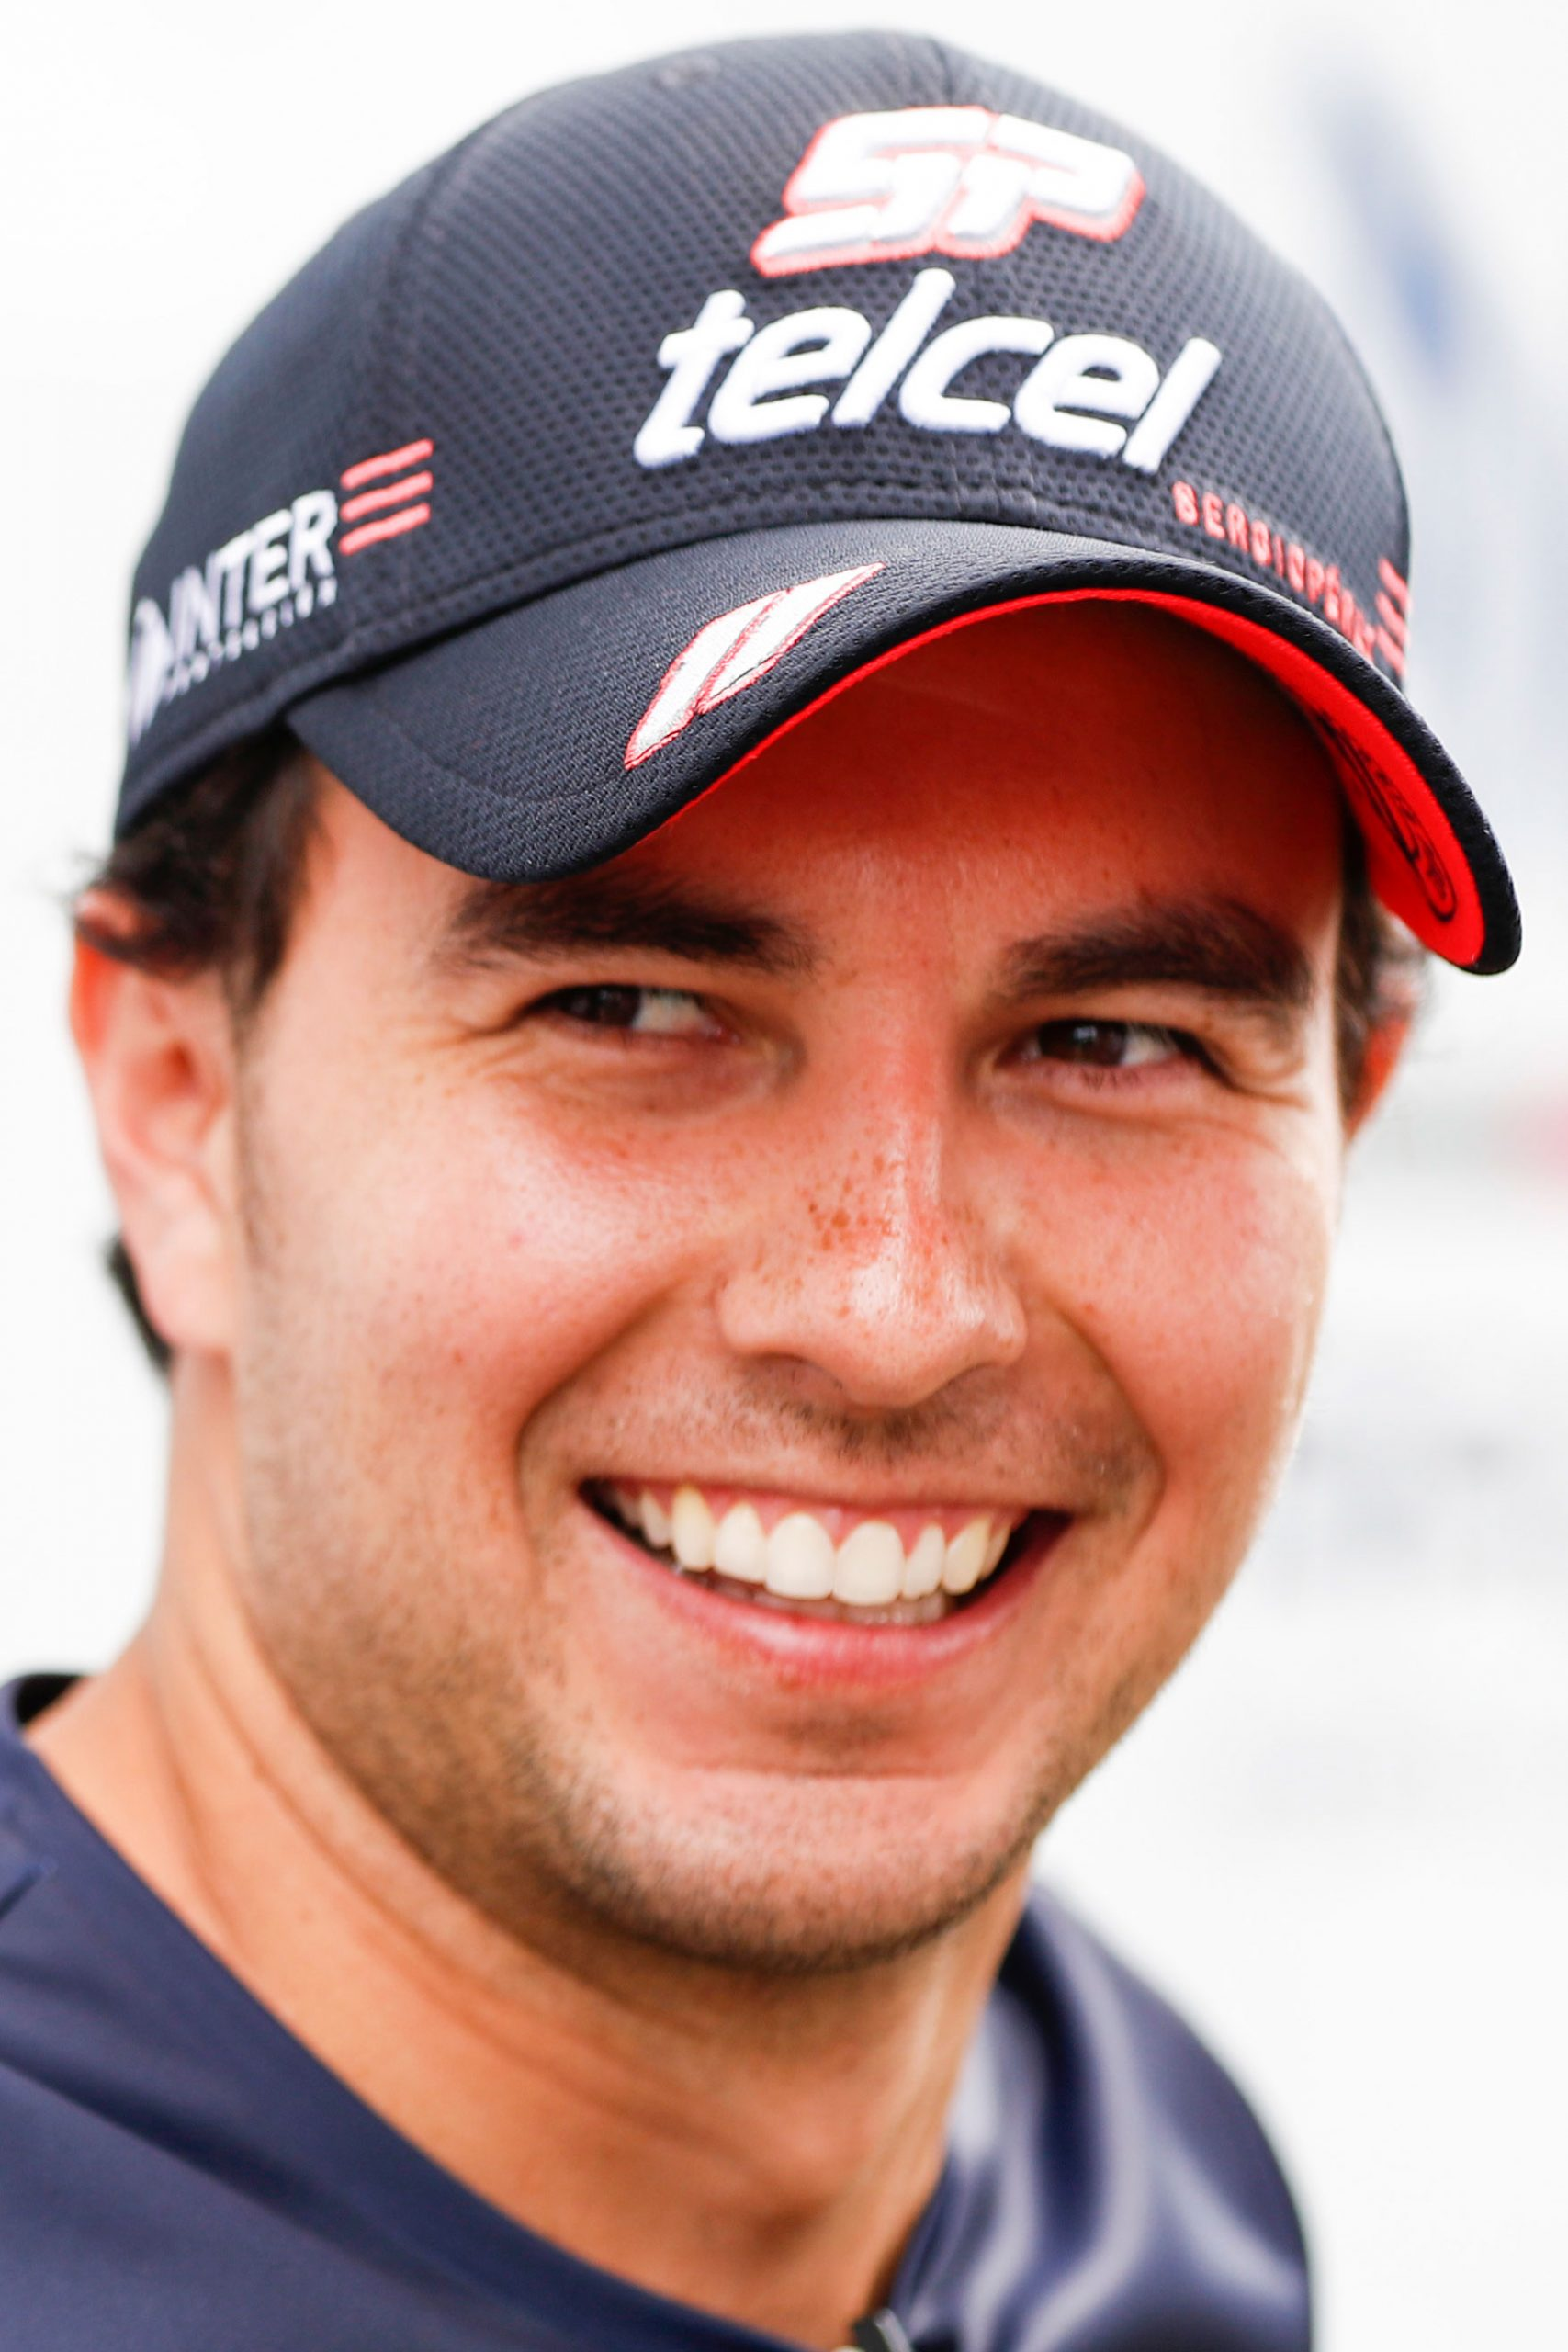 Sergio Perez Wiki Info Biography F1 Career Stats Facts Profile